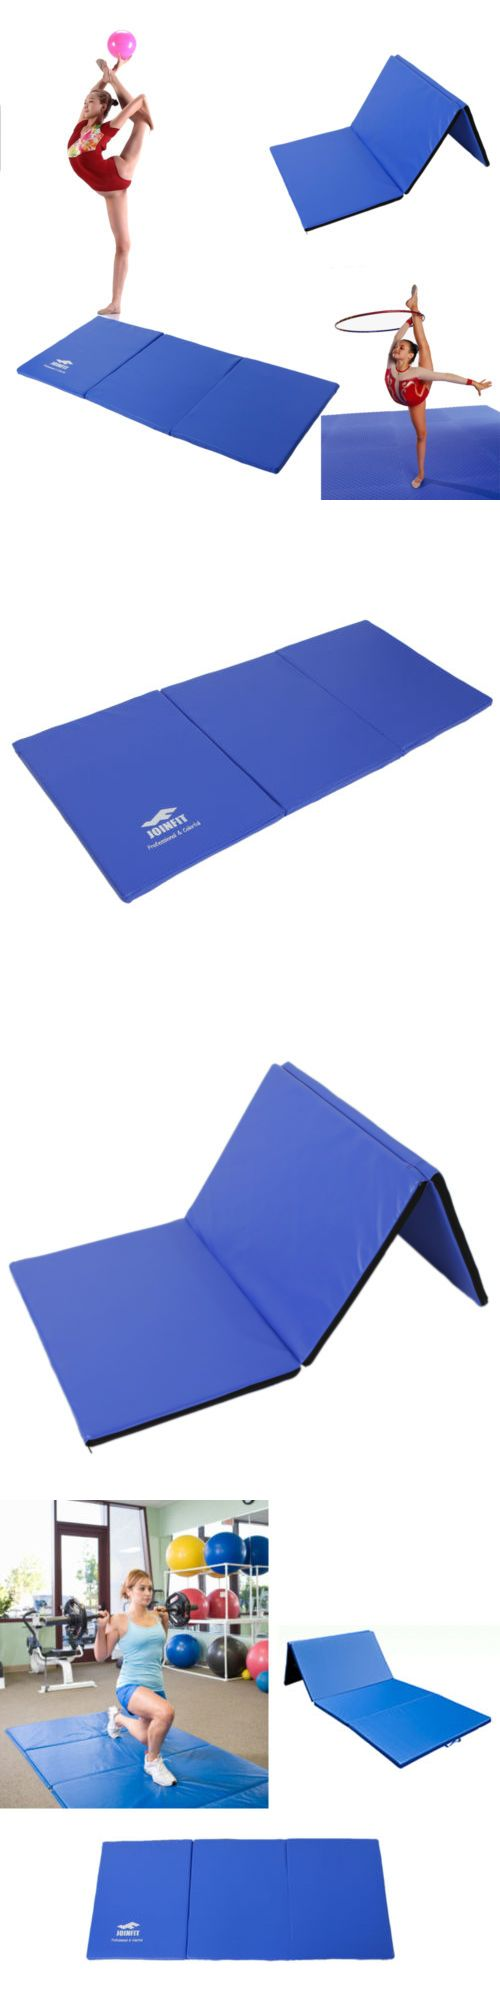 Exercise Mats 44079: Folding Panel Thick Gymnastics Mat Gym Fitness Exercise Stretching Yoga Pad Blue -> BUY IT NOW ONLY: $34.99 on eBay!